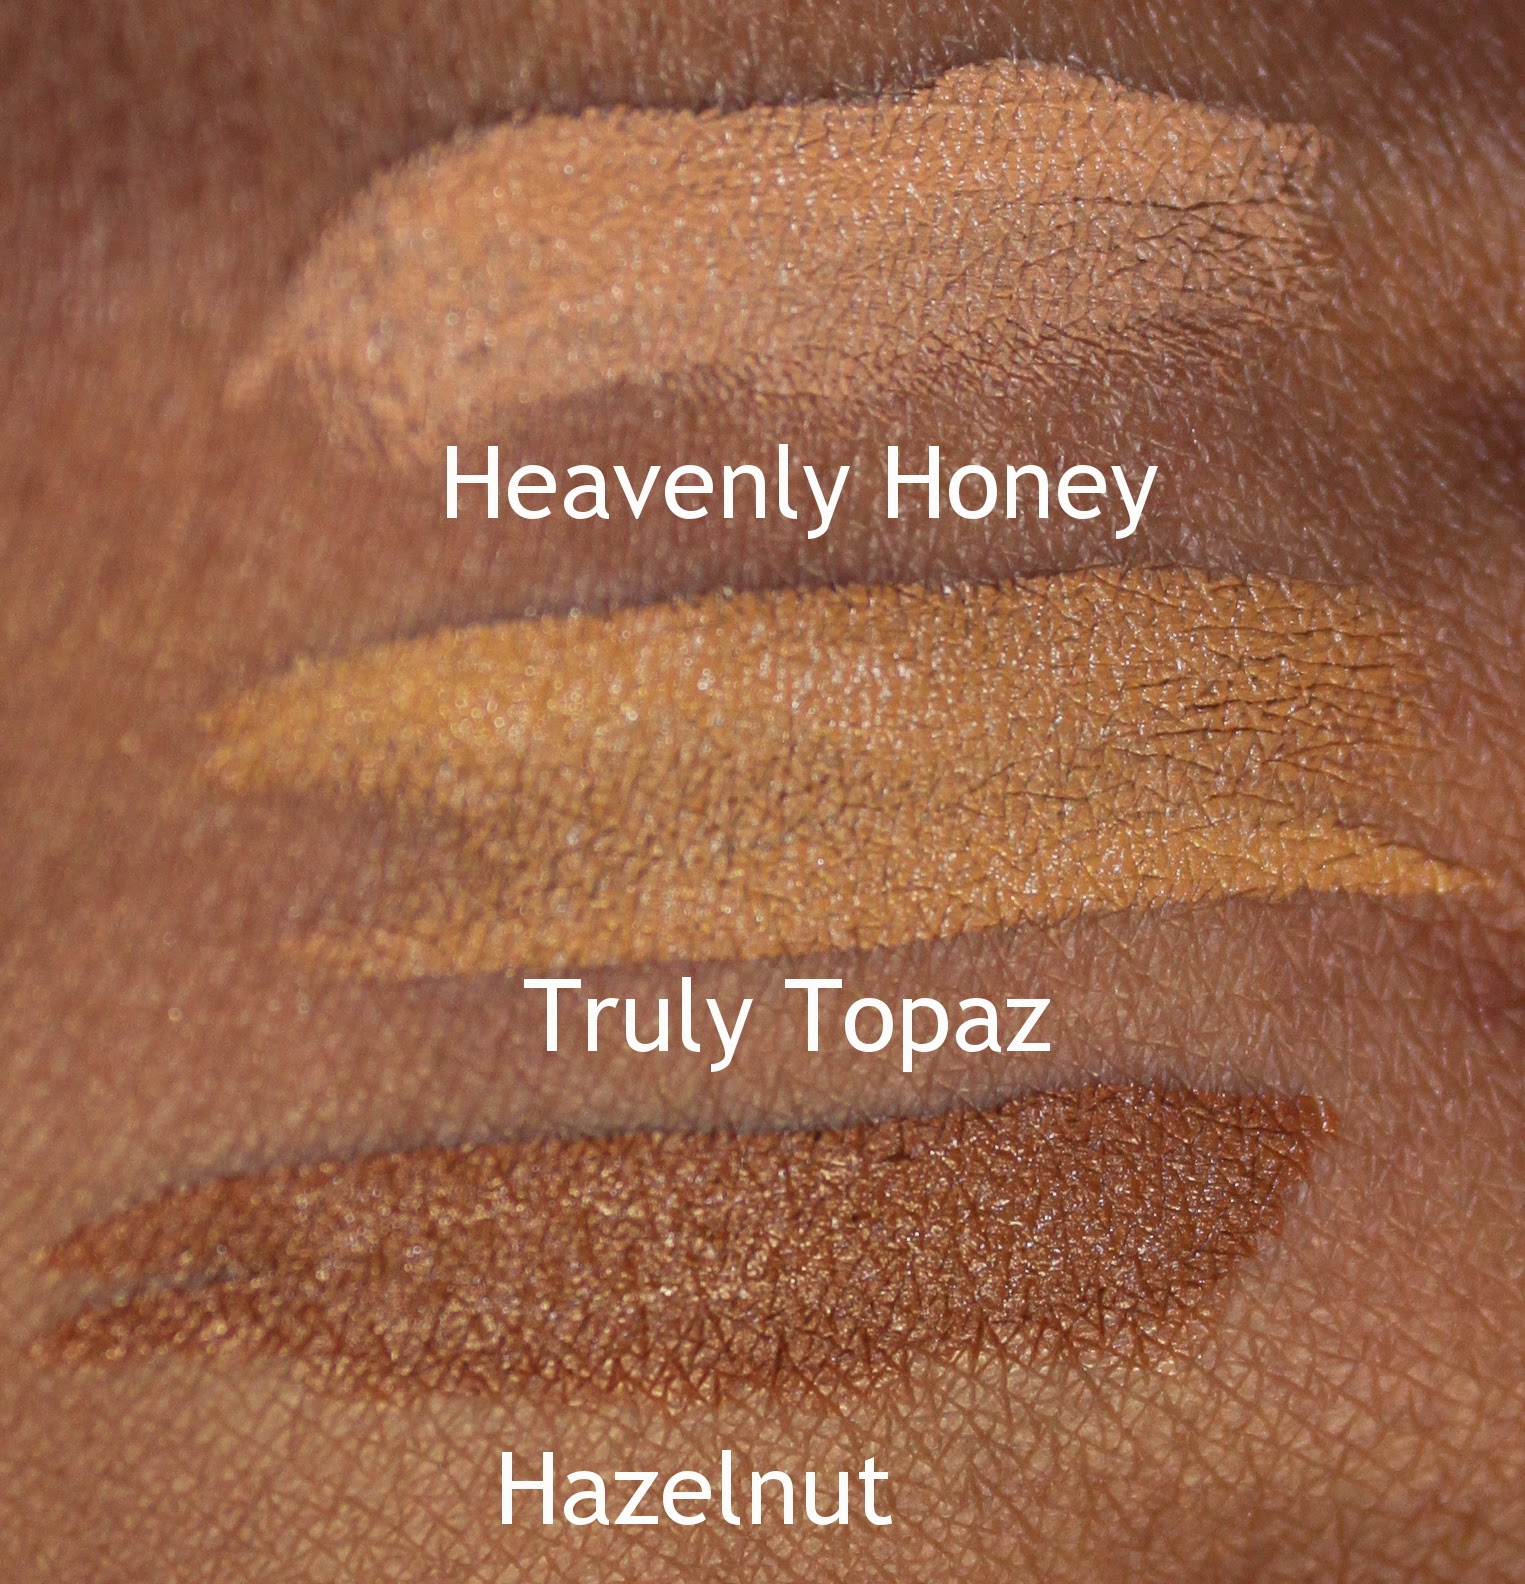 black opal stick foundation swatches heavenly honey truly topaz hazelnut